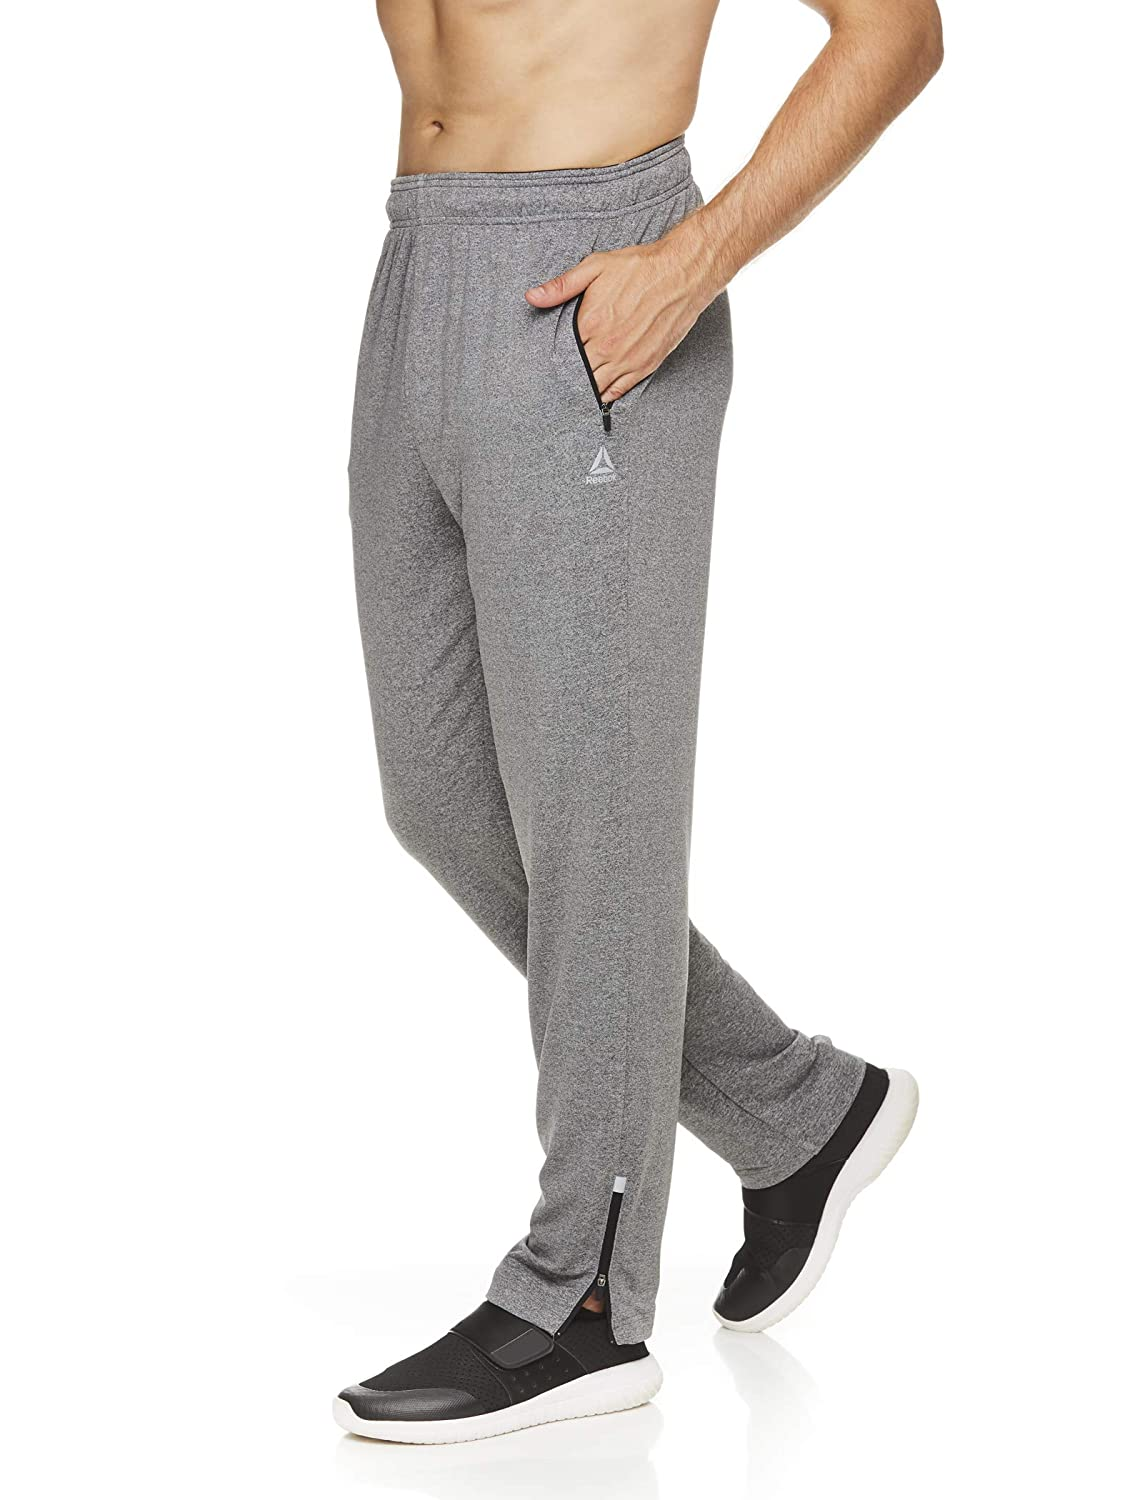 Reebok Mens Track & Running Pants with Pockets - Athletic ...